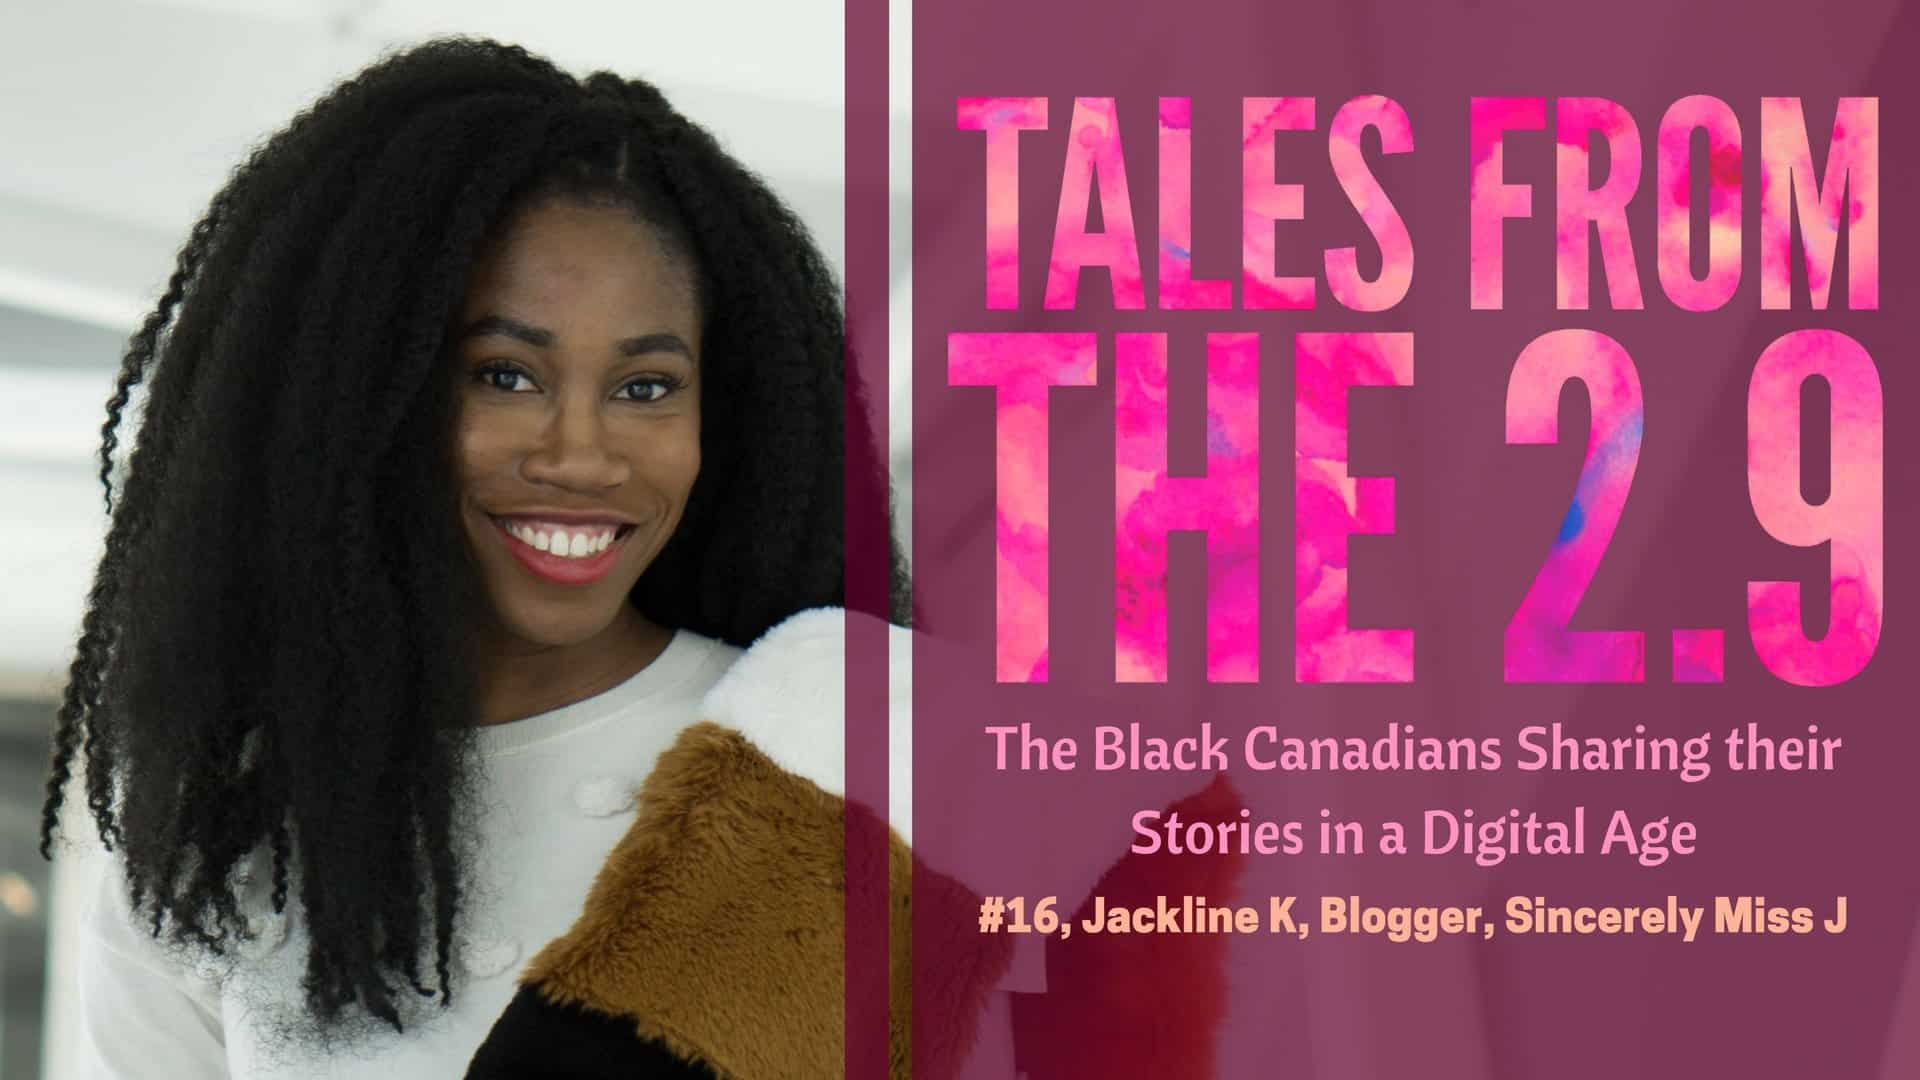 Tales from the 2.9 — The Black Canadians Sharing their Stories in a Digital Age — Vol. 2 #16, Jackline K, Blogger, Sincerely Miss J (Featured Image)